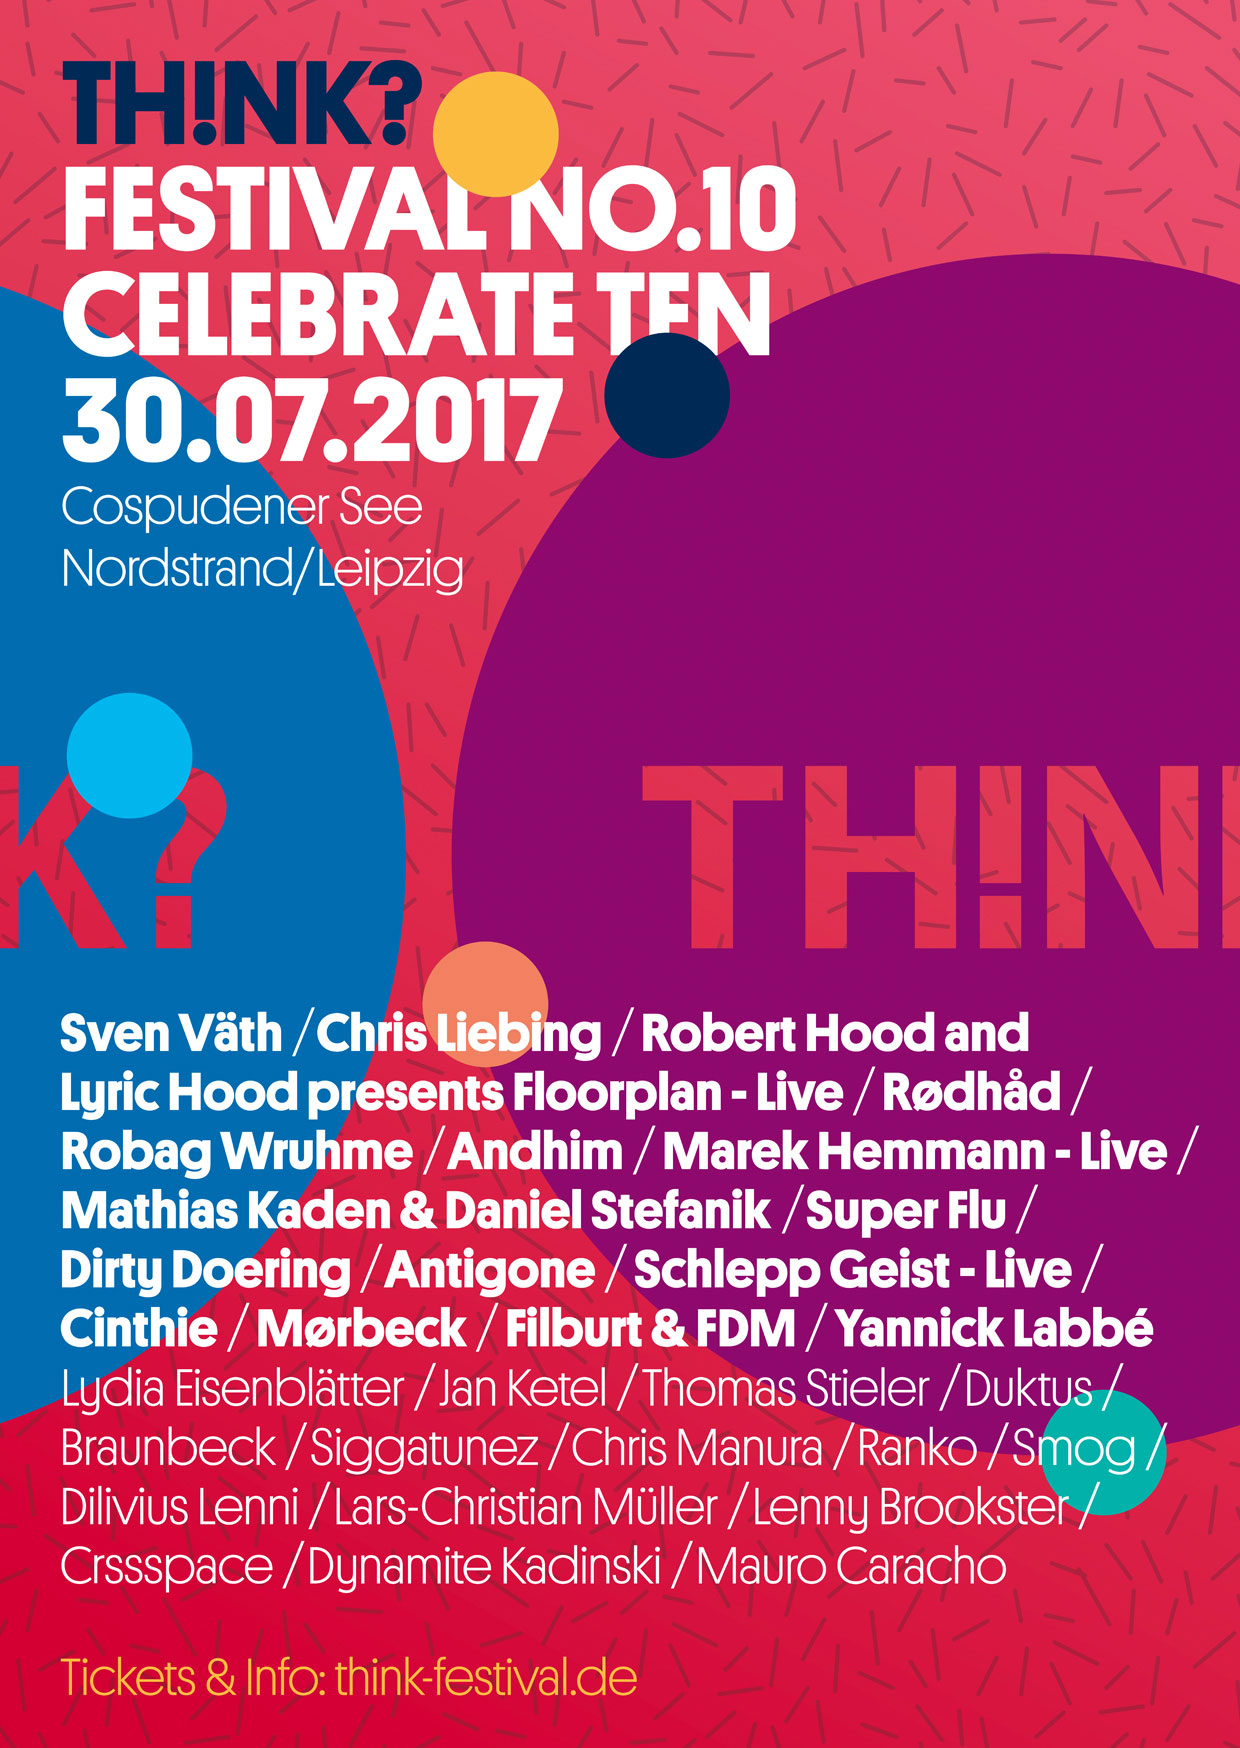 30.07.2017 - TH!NK? Open Air 2017 - Cospudener See, Leipzig